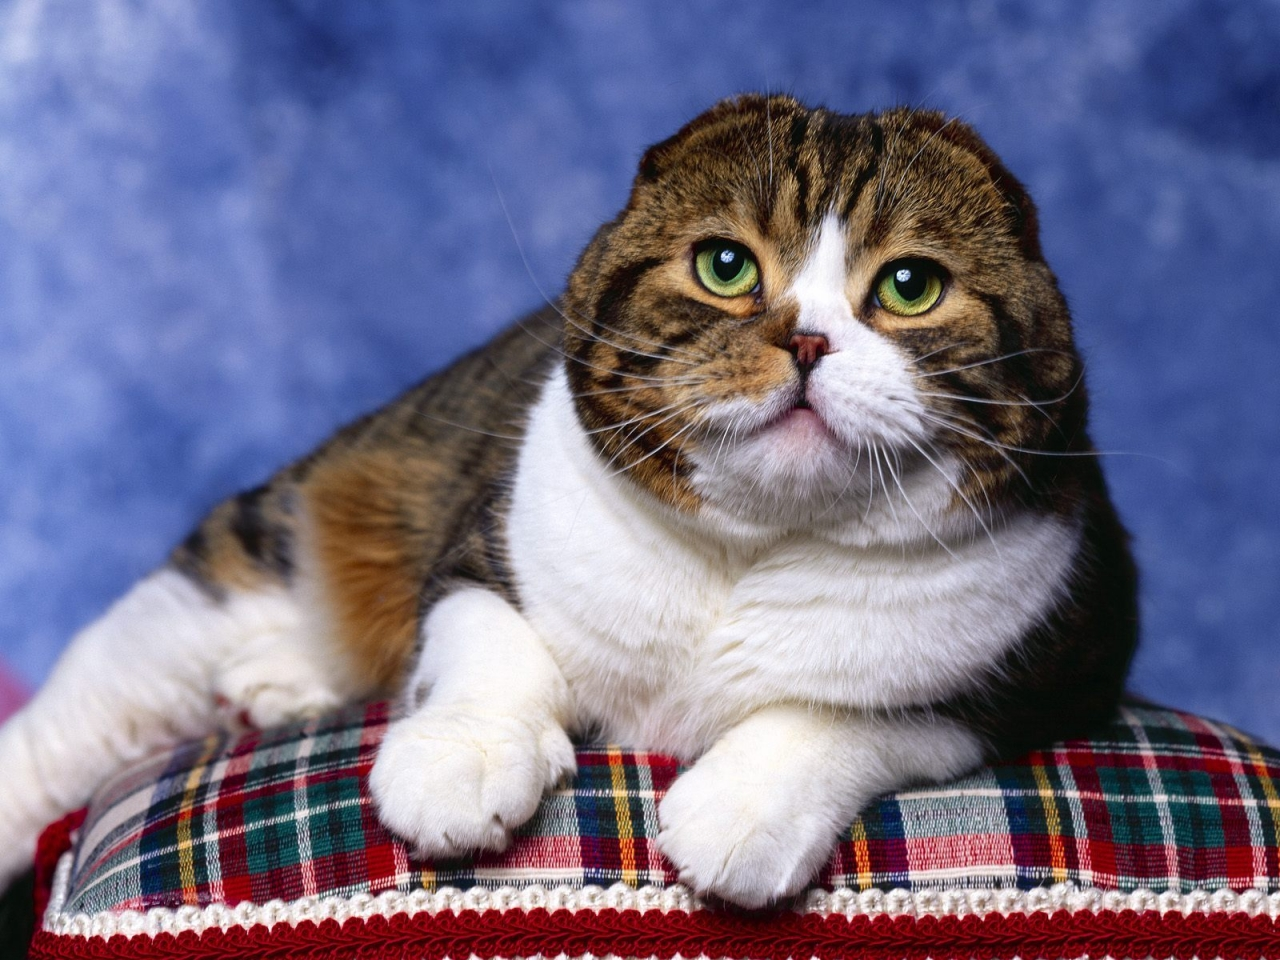 Scottish Fold Cat Photo Shoot for 1280 x 960 resolution